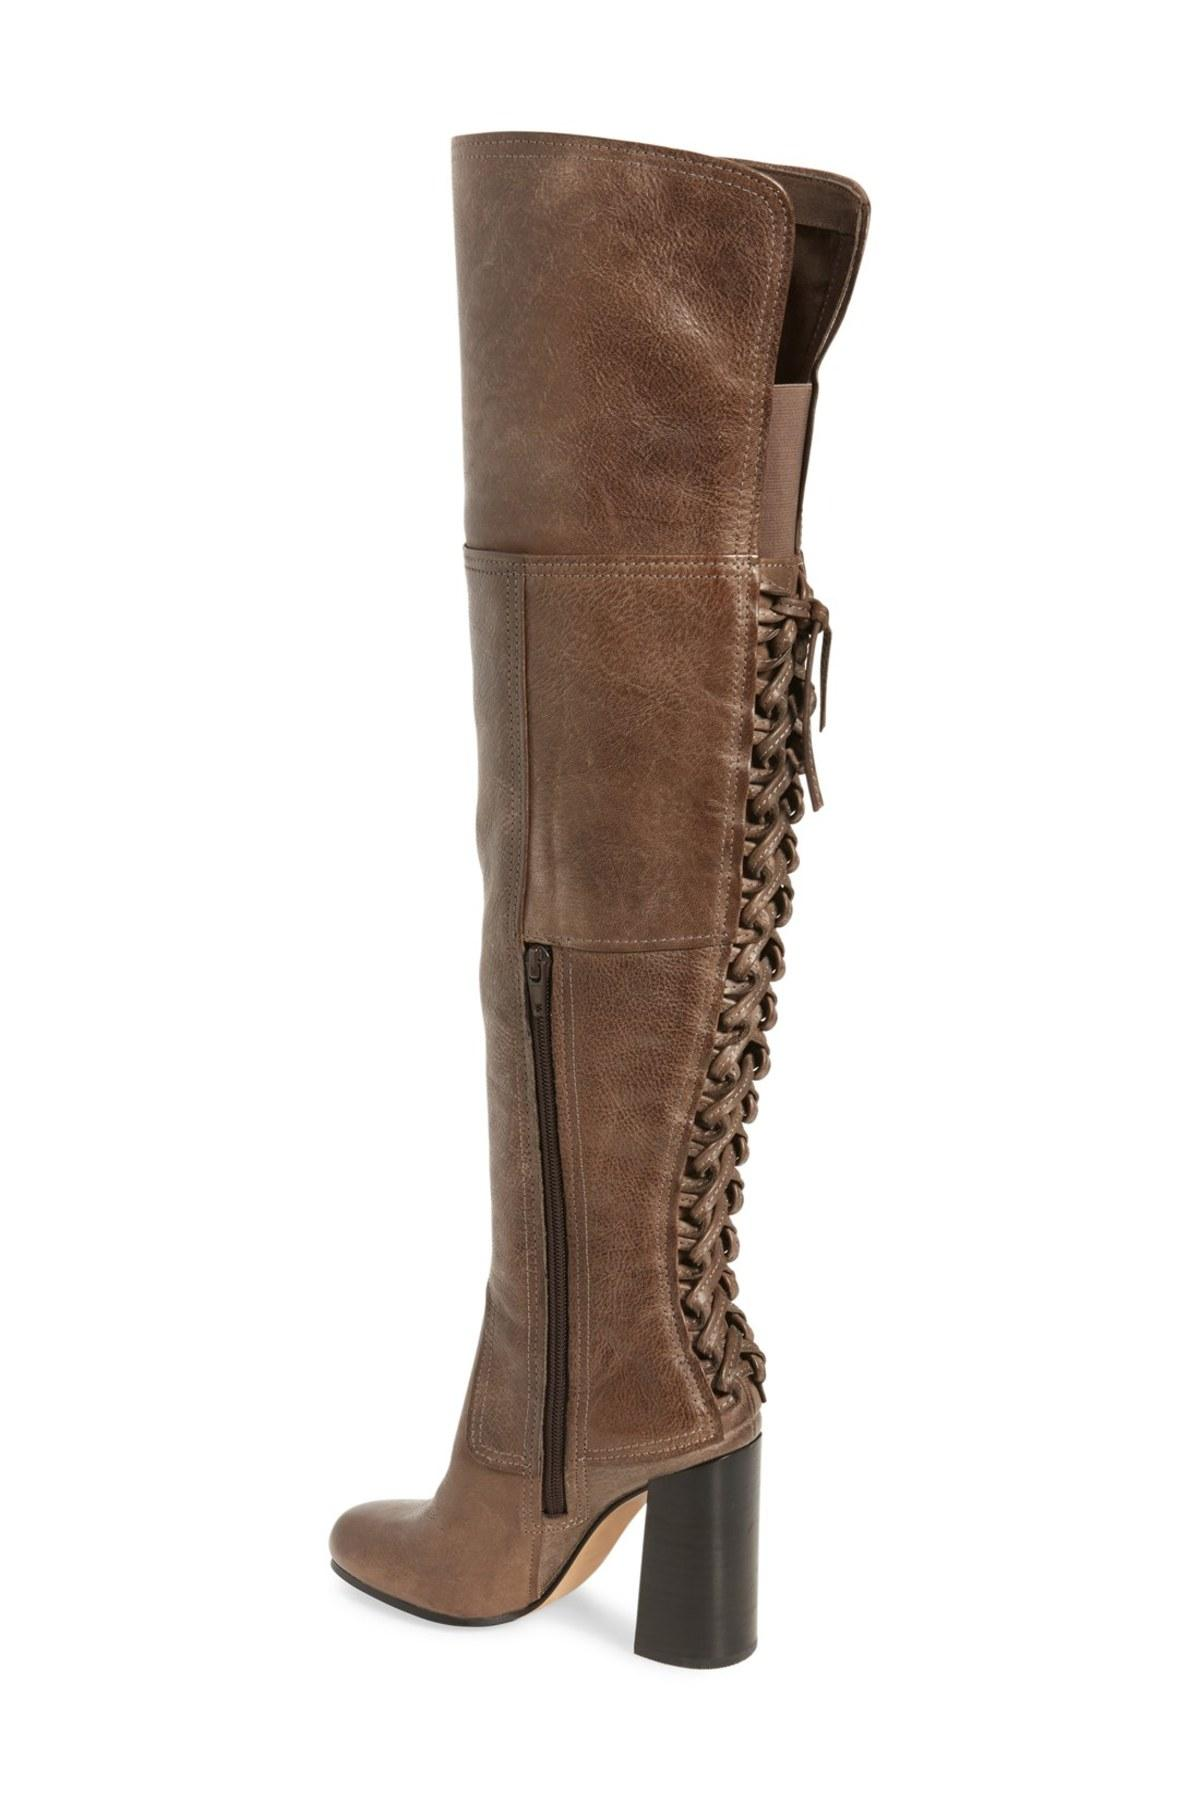 Lyst Vince Camuto Tolla Over The Knee Boot Women In Gray